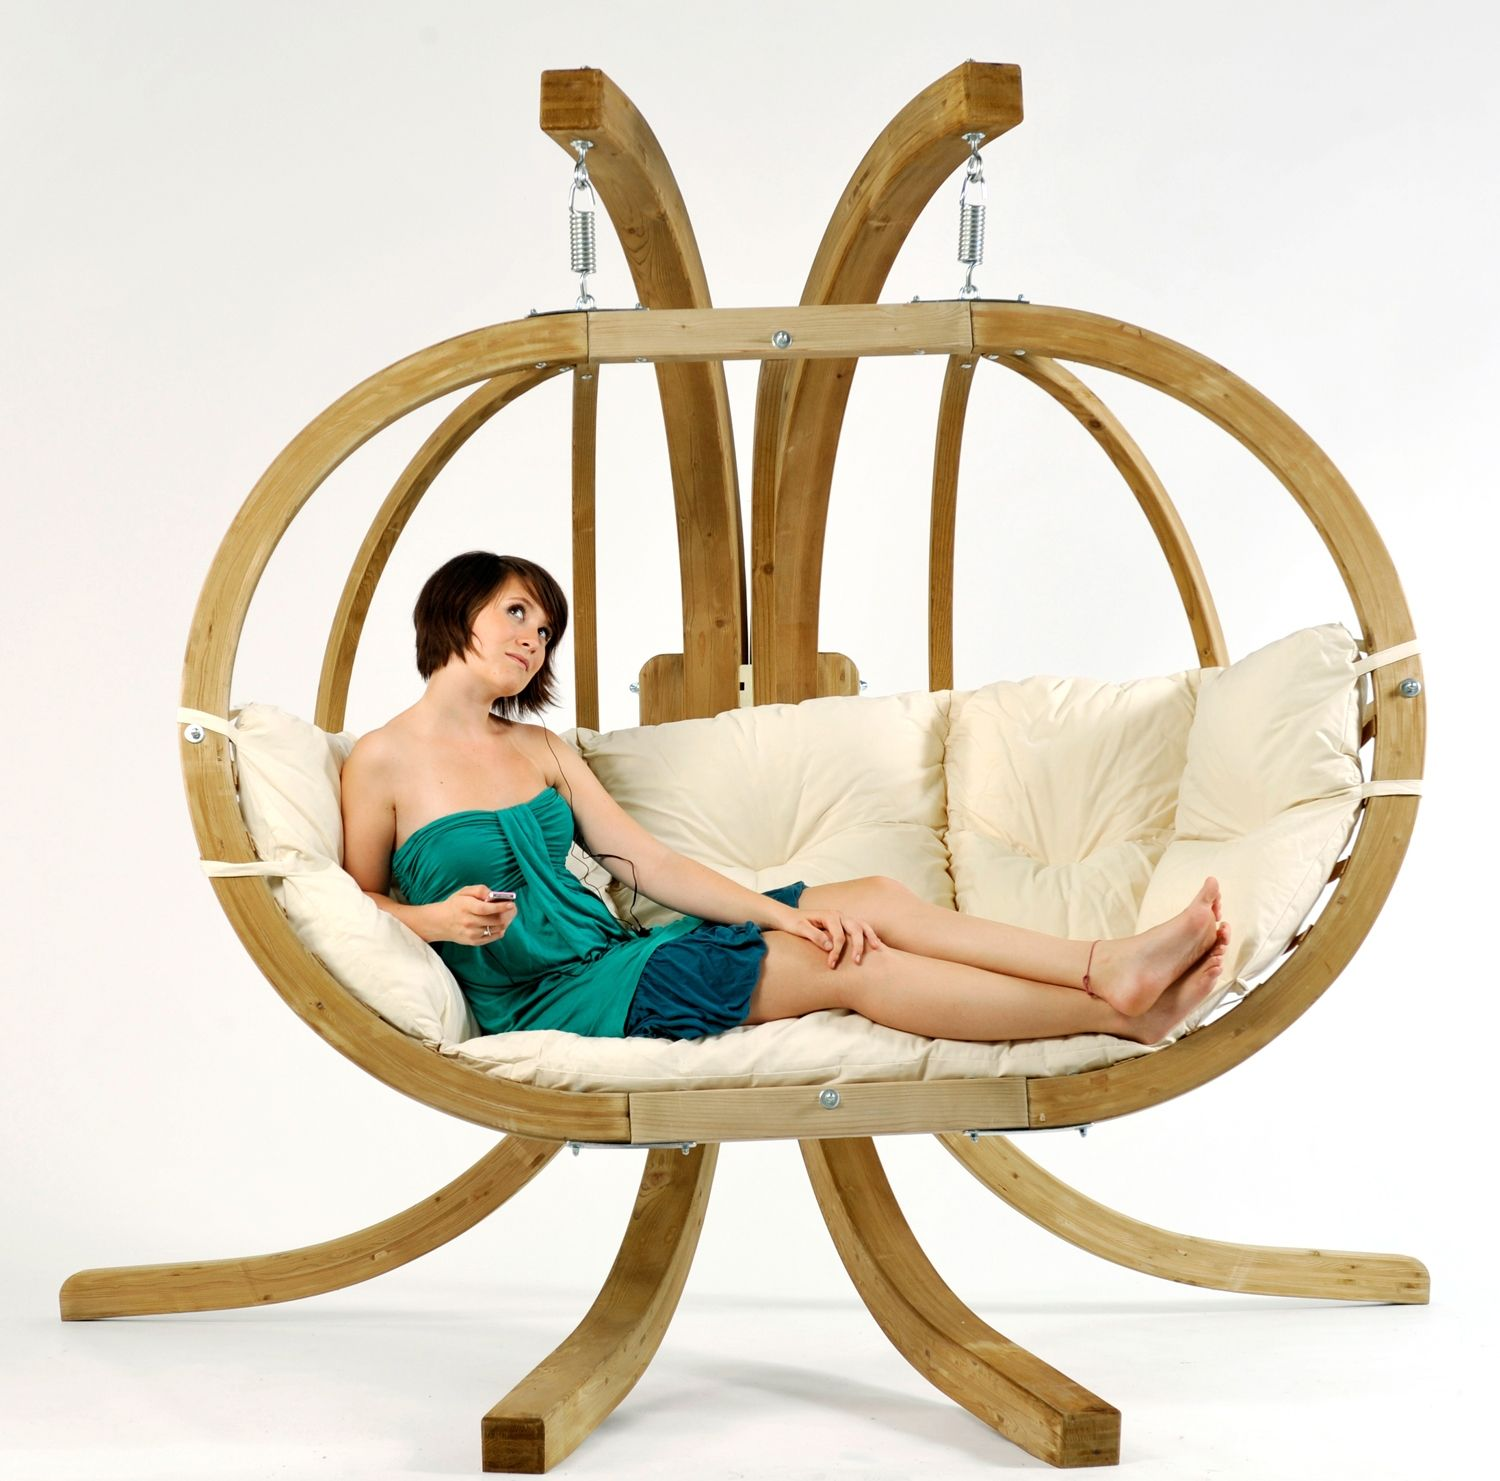 Explore Indoor Hanging Chairs, Loveseats, And More!